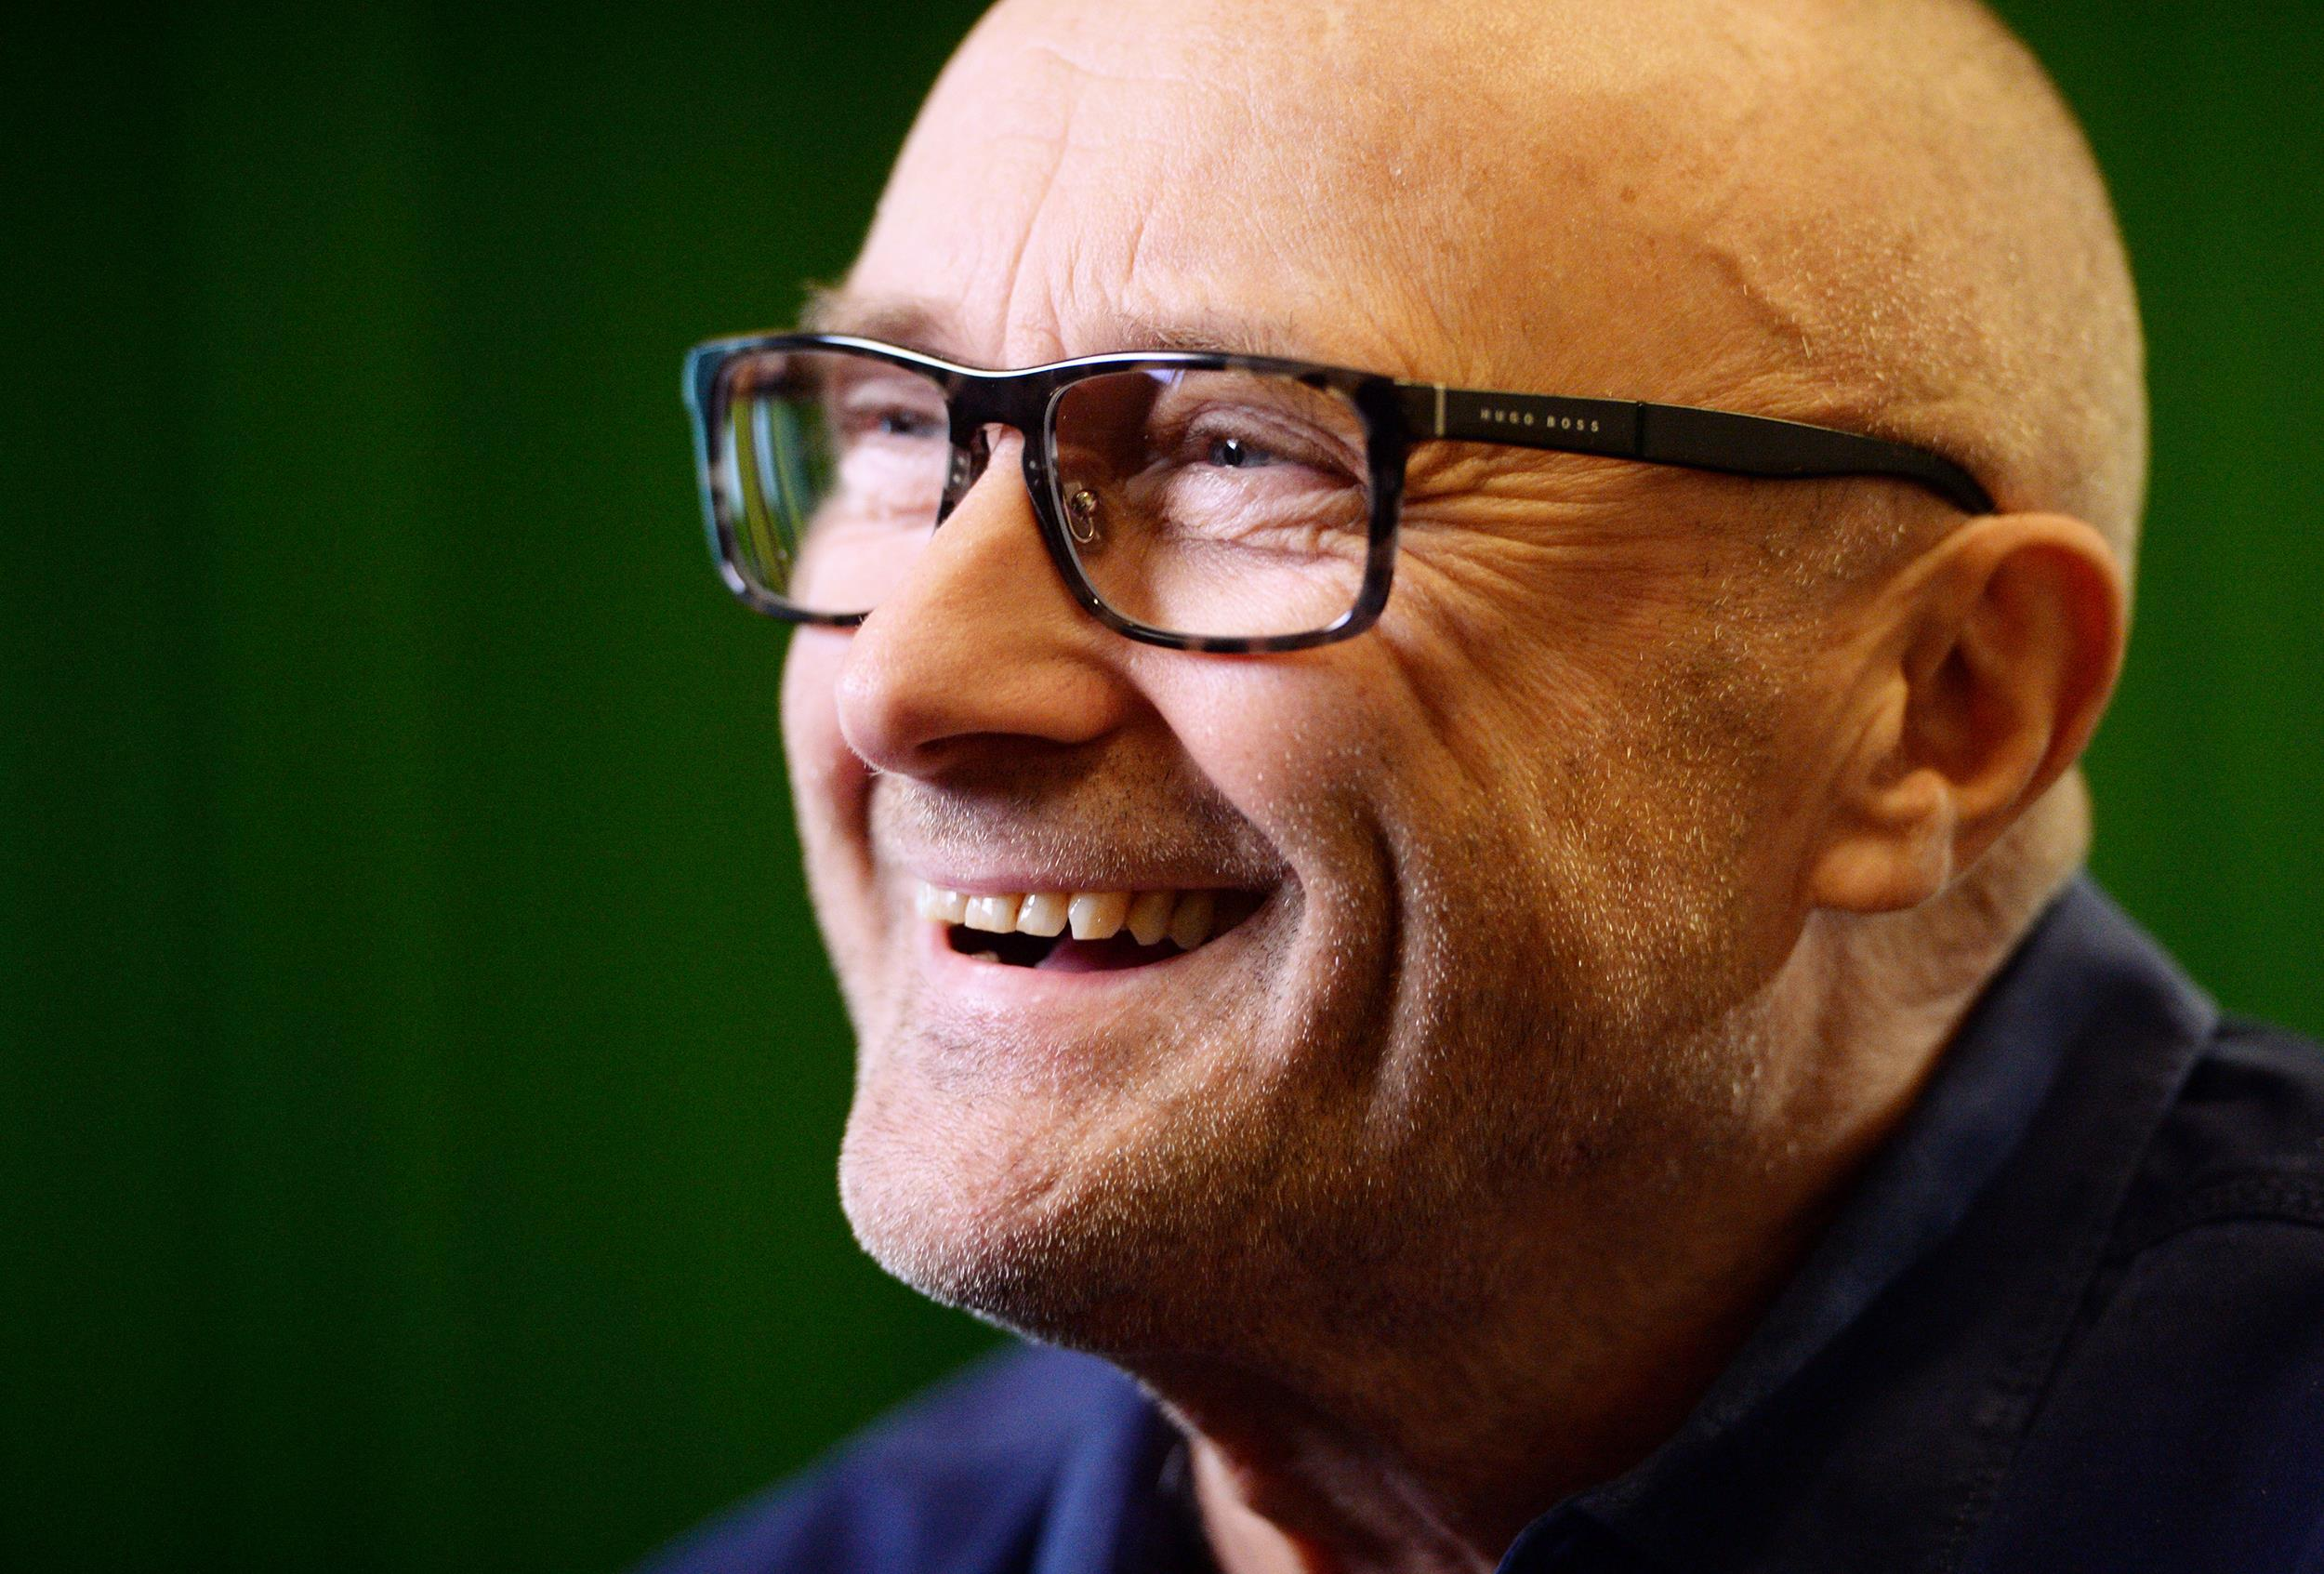 Phil Collins Wallpaper